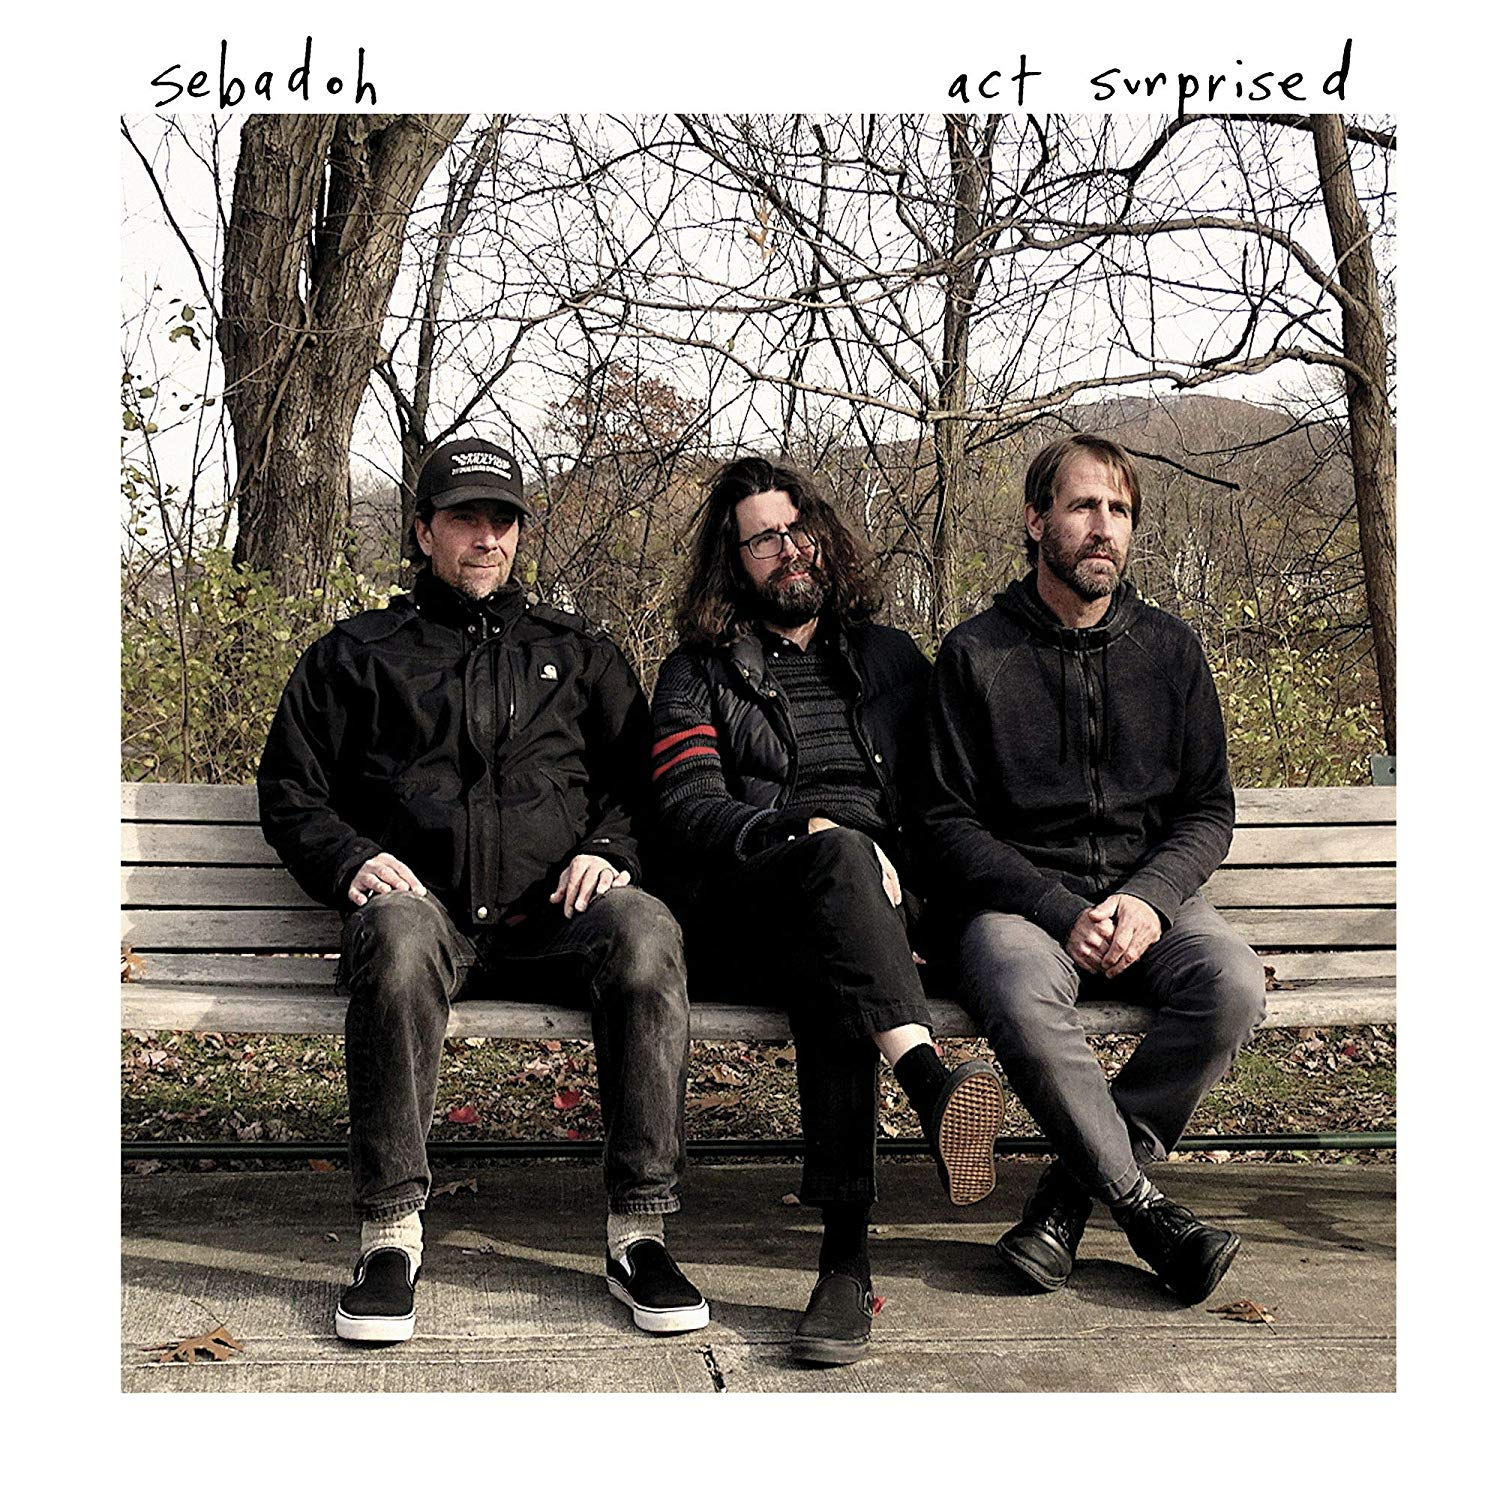 Sebadoh - Act Surprised [Indie Exclusive Limited Edition Orange LP]